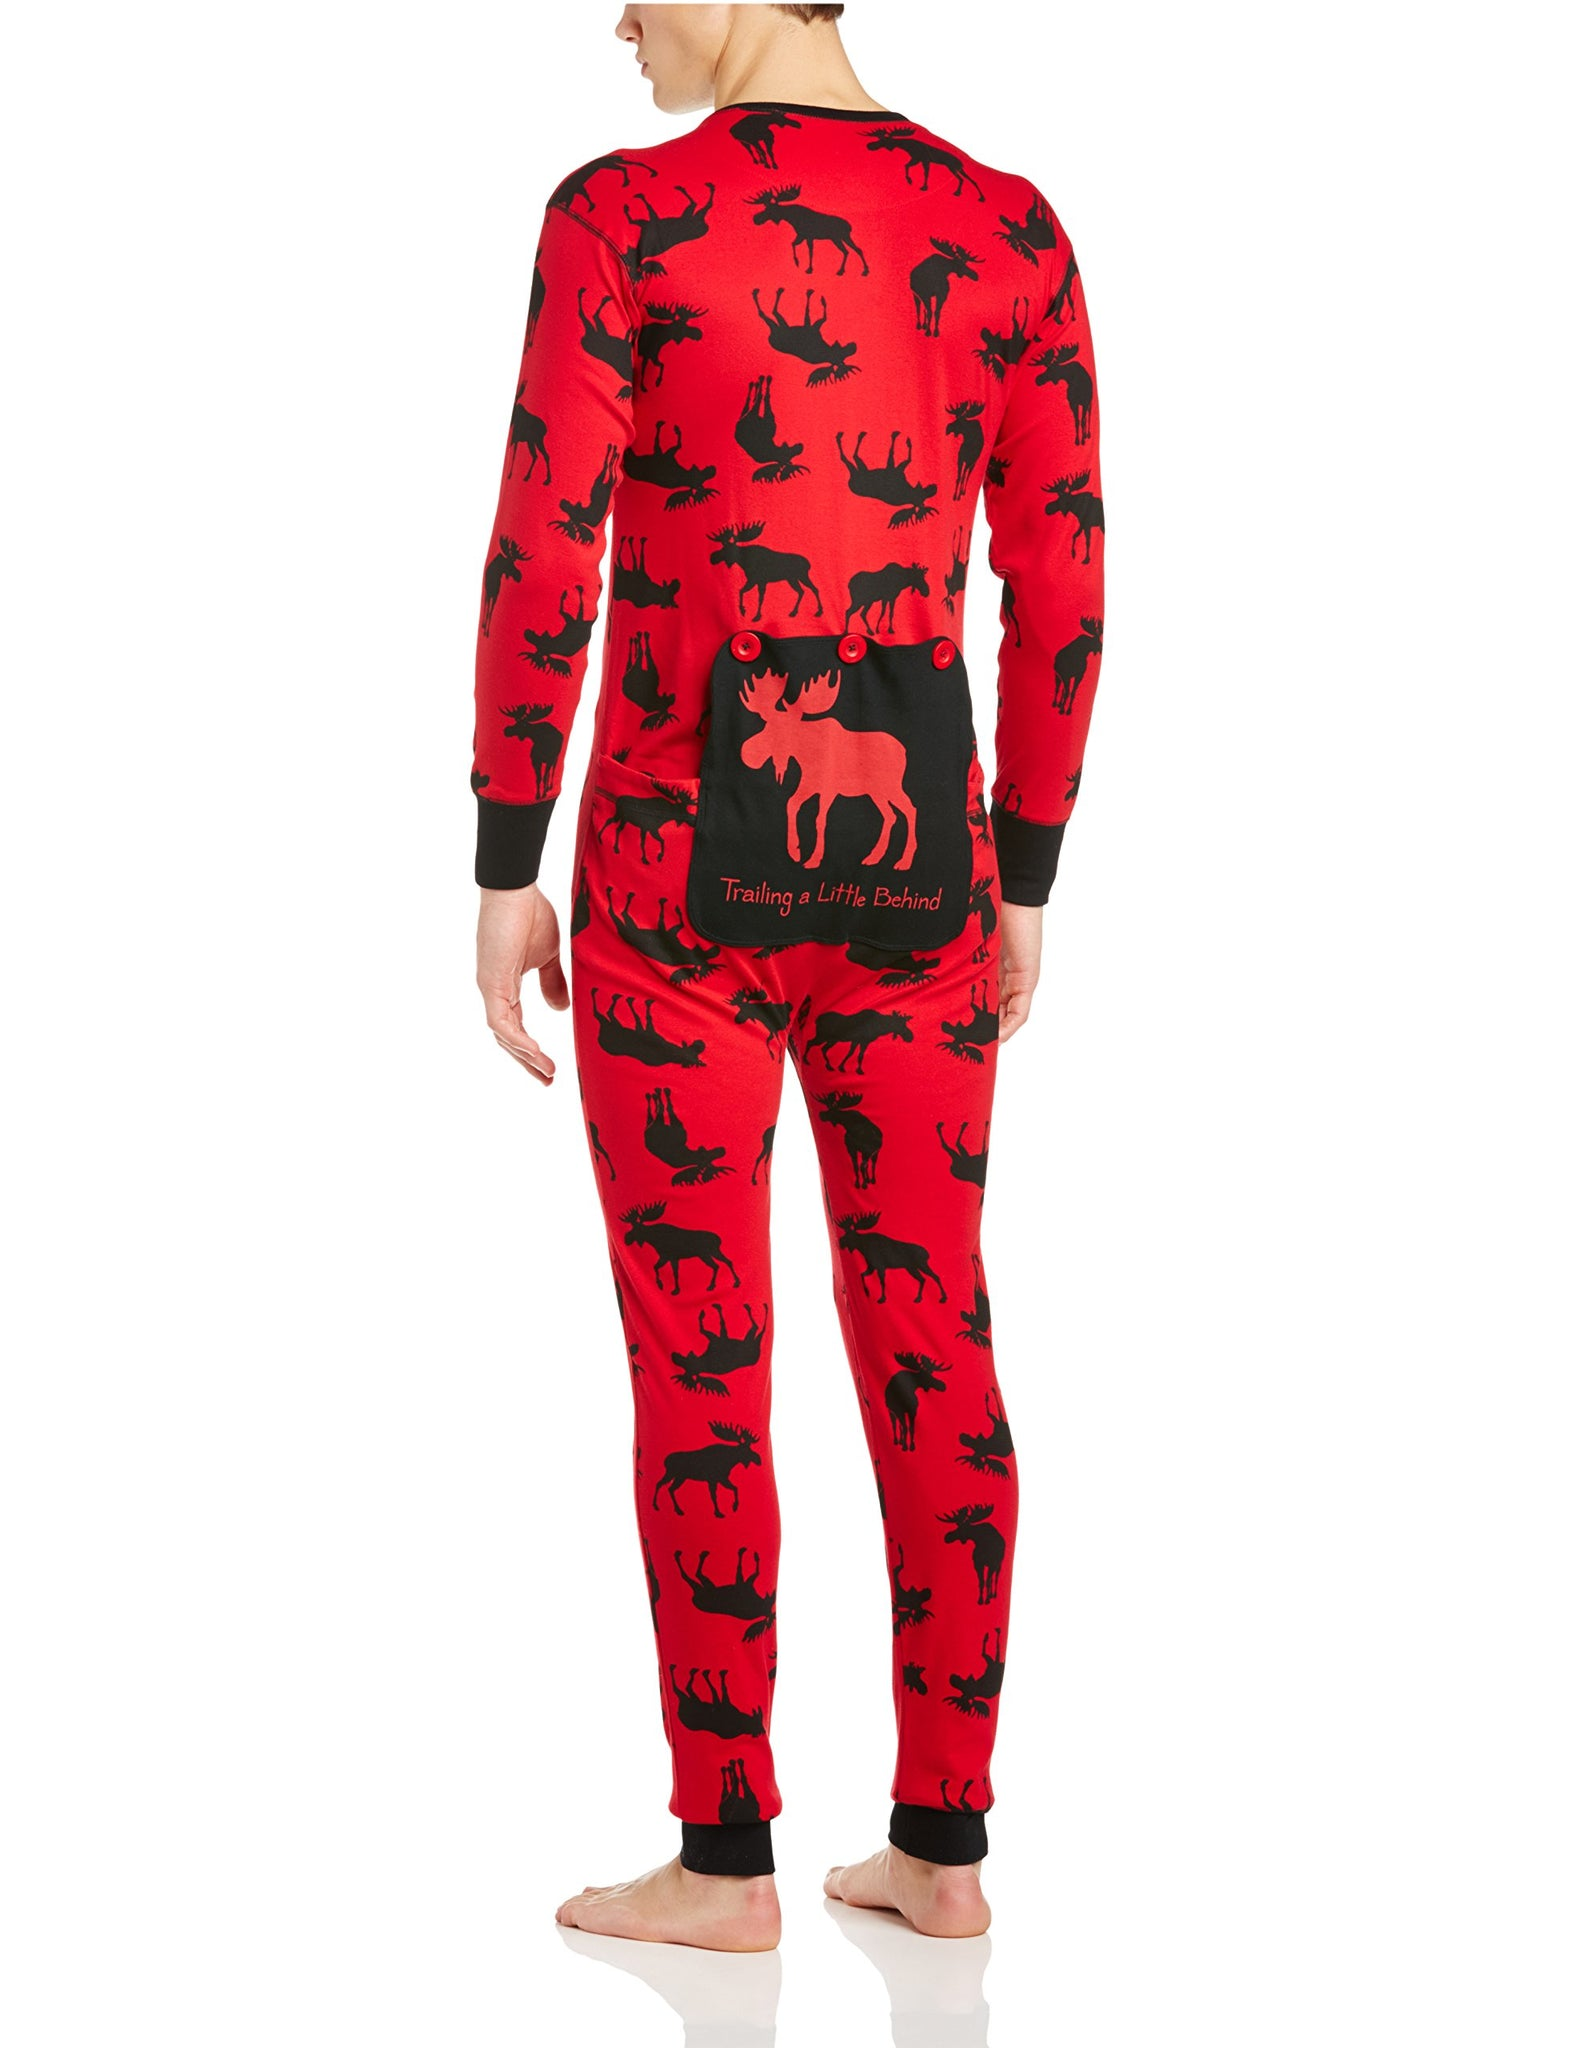 Little Blue House by Hatley Unisex-Adults Union Suits, Mouse on red/Trailing a Little Behind, Small